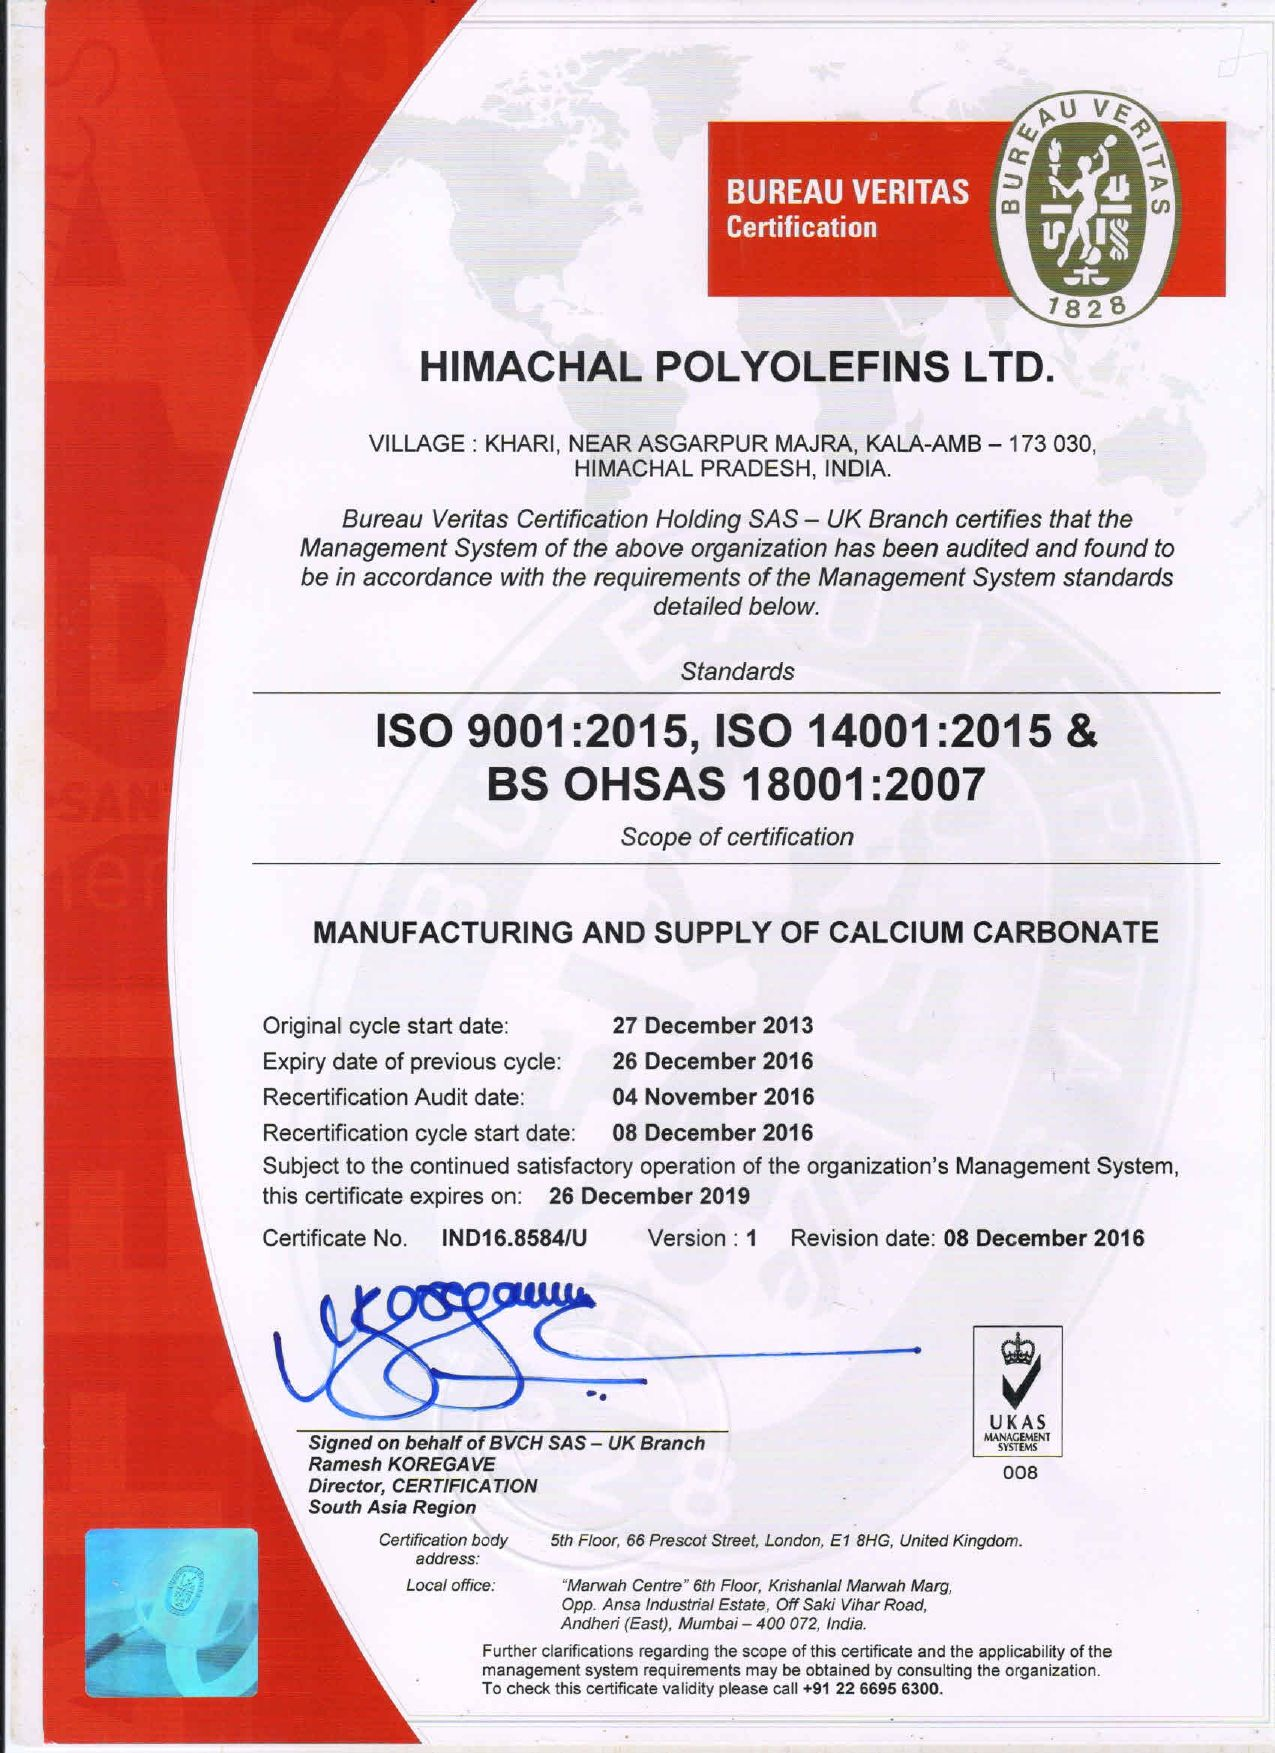 ISO 9001-2015, ISO 14001-2015 & OHSAS 18001-2007 Certificate